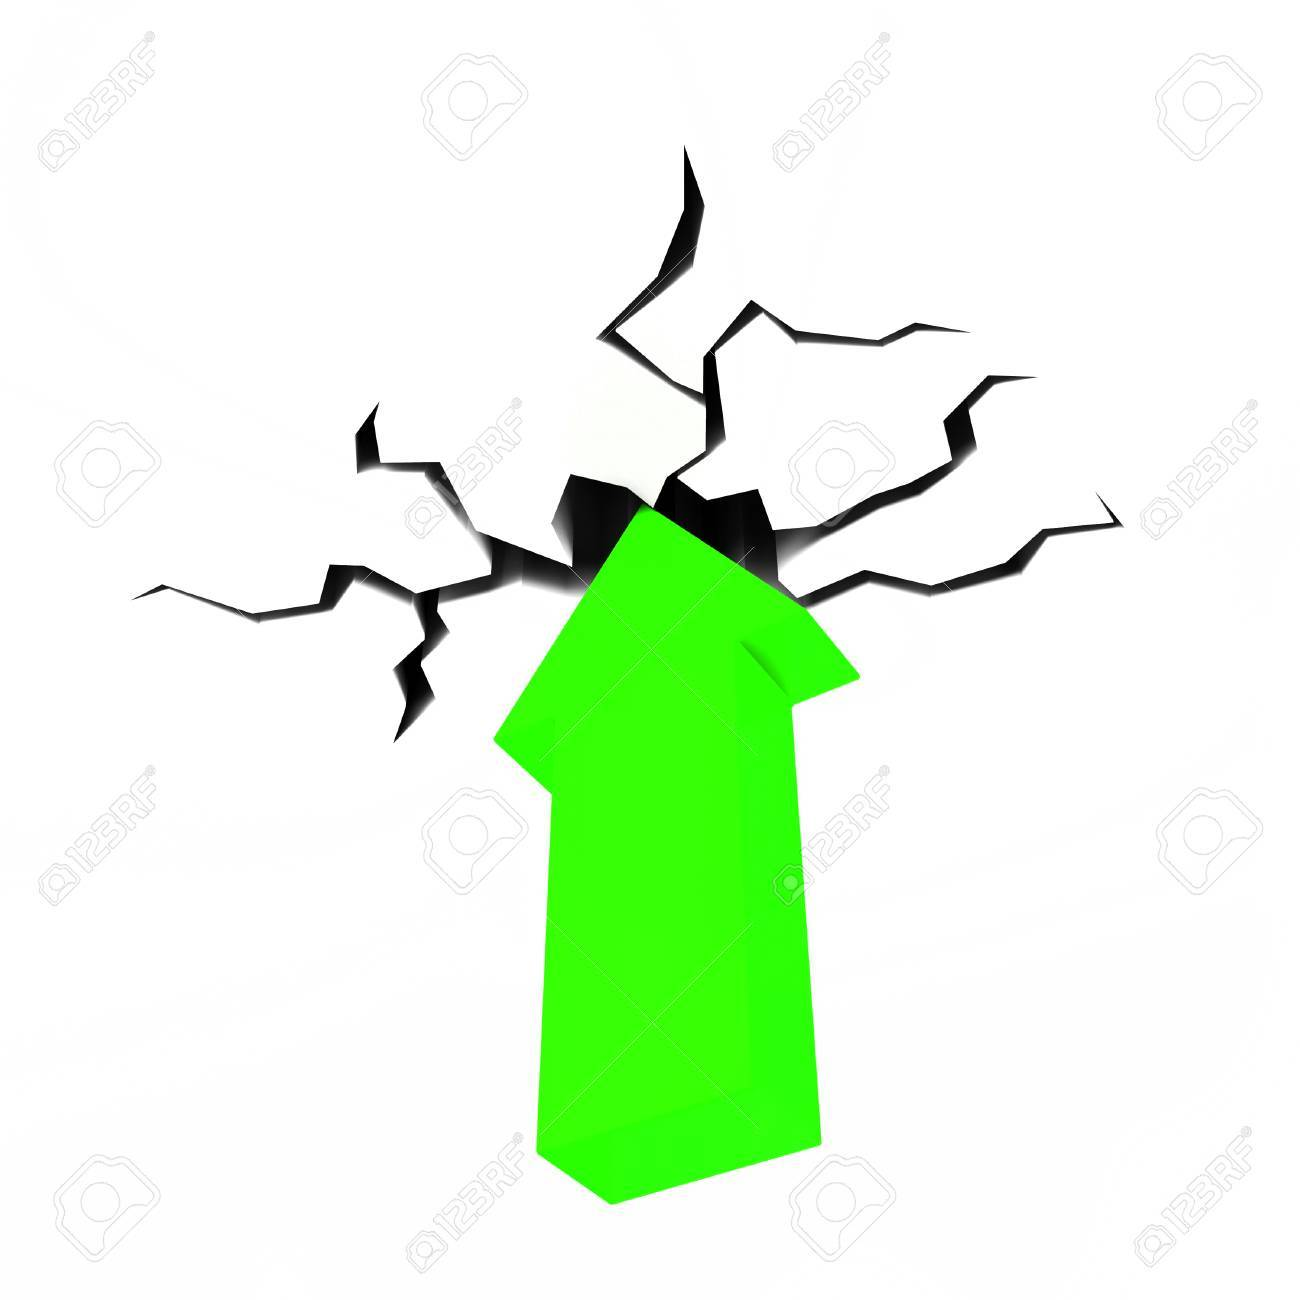 arrow through roof meaning rising success and gain stock photo